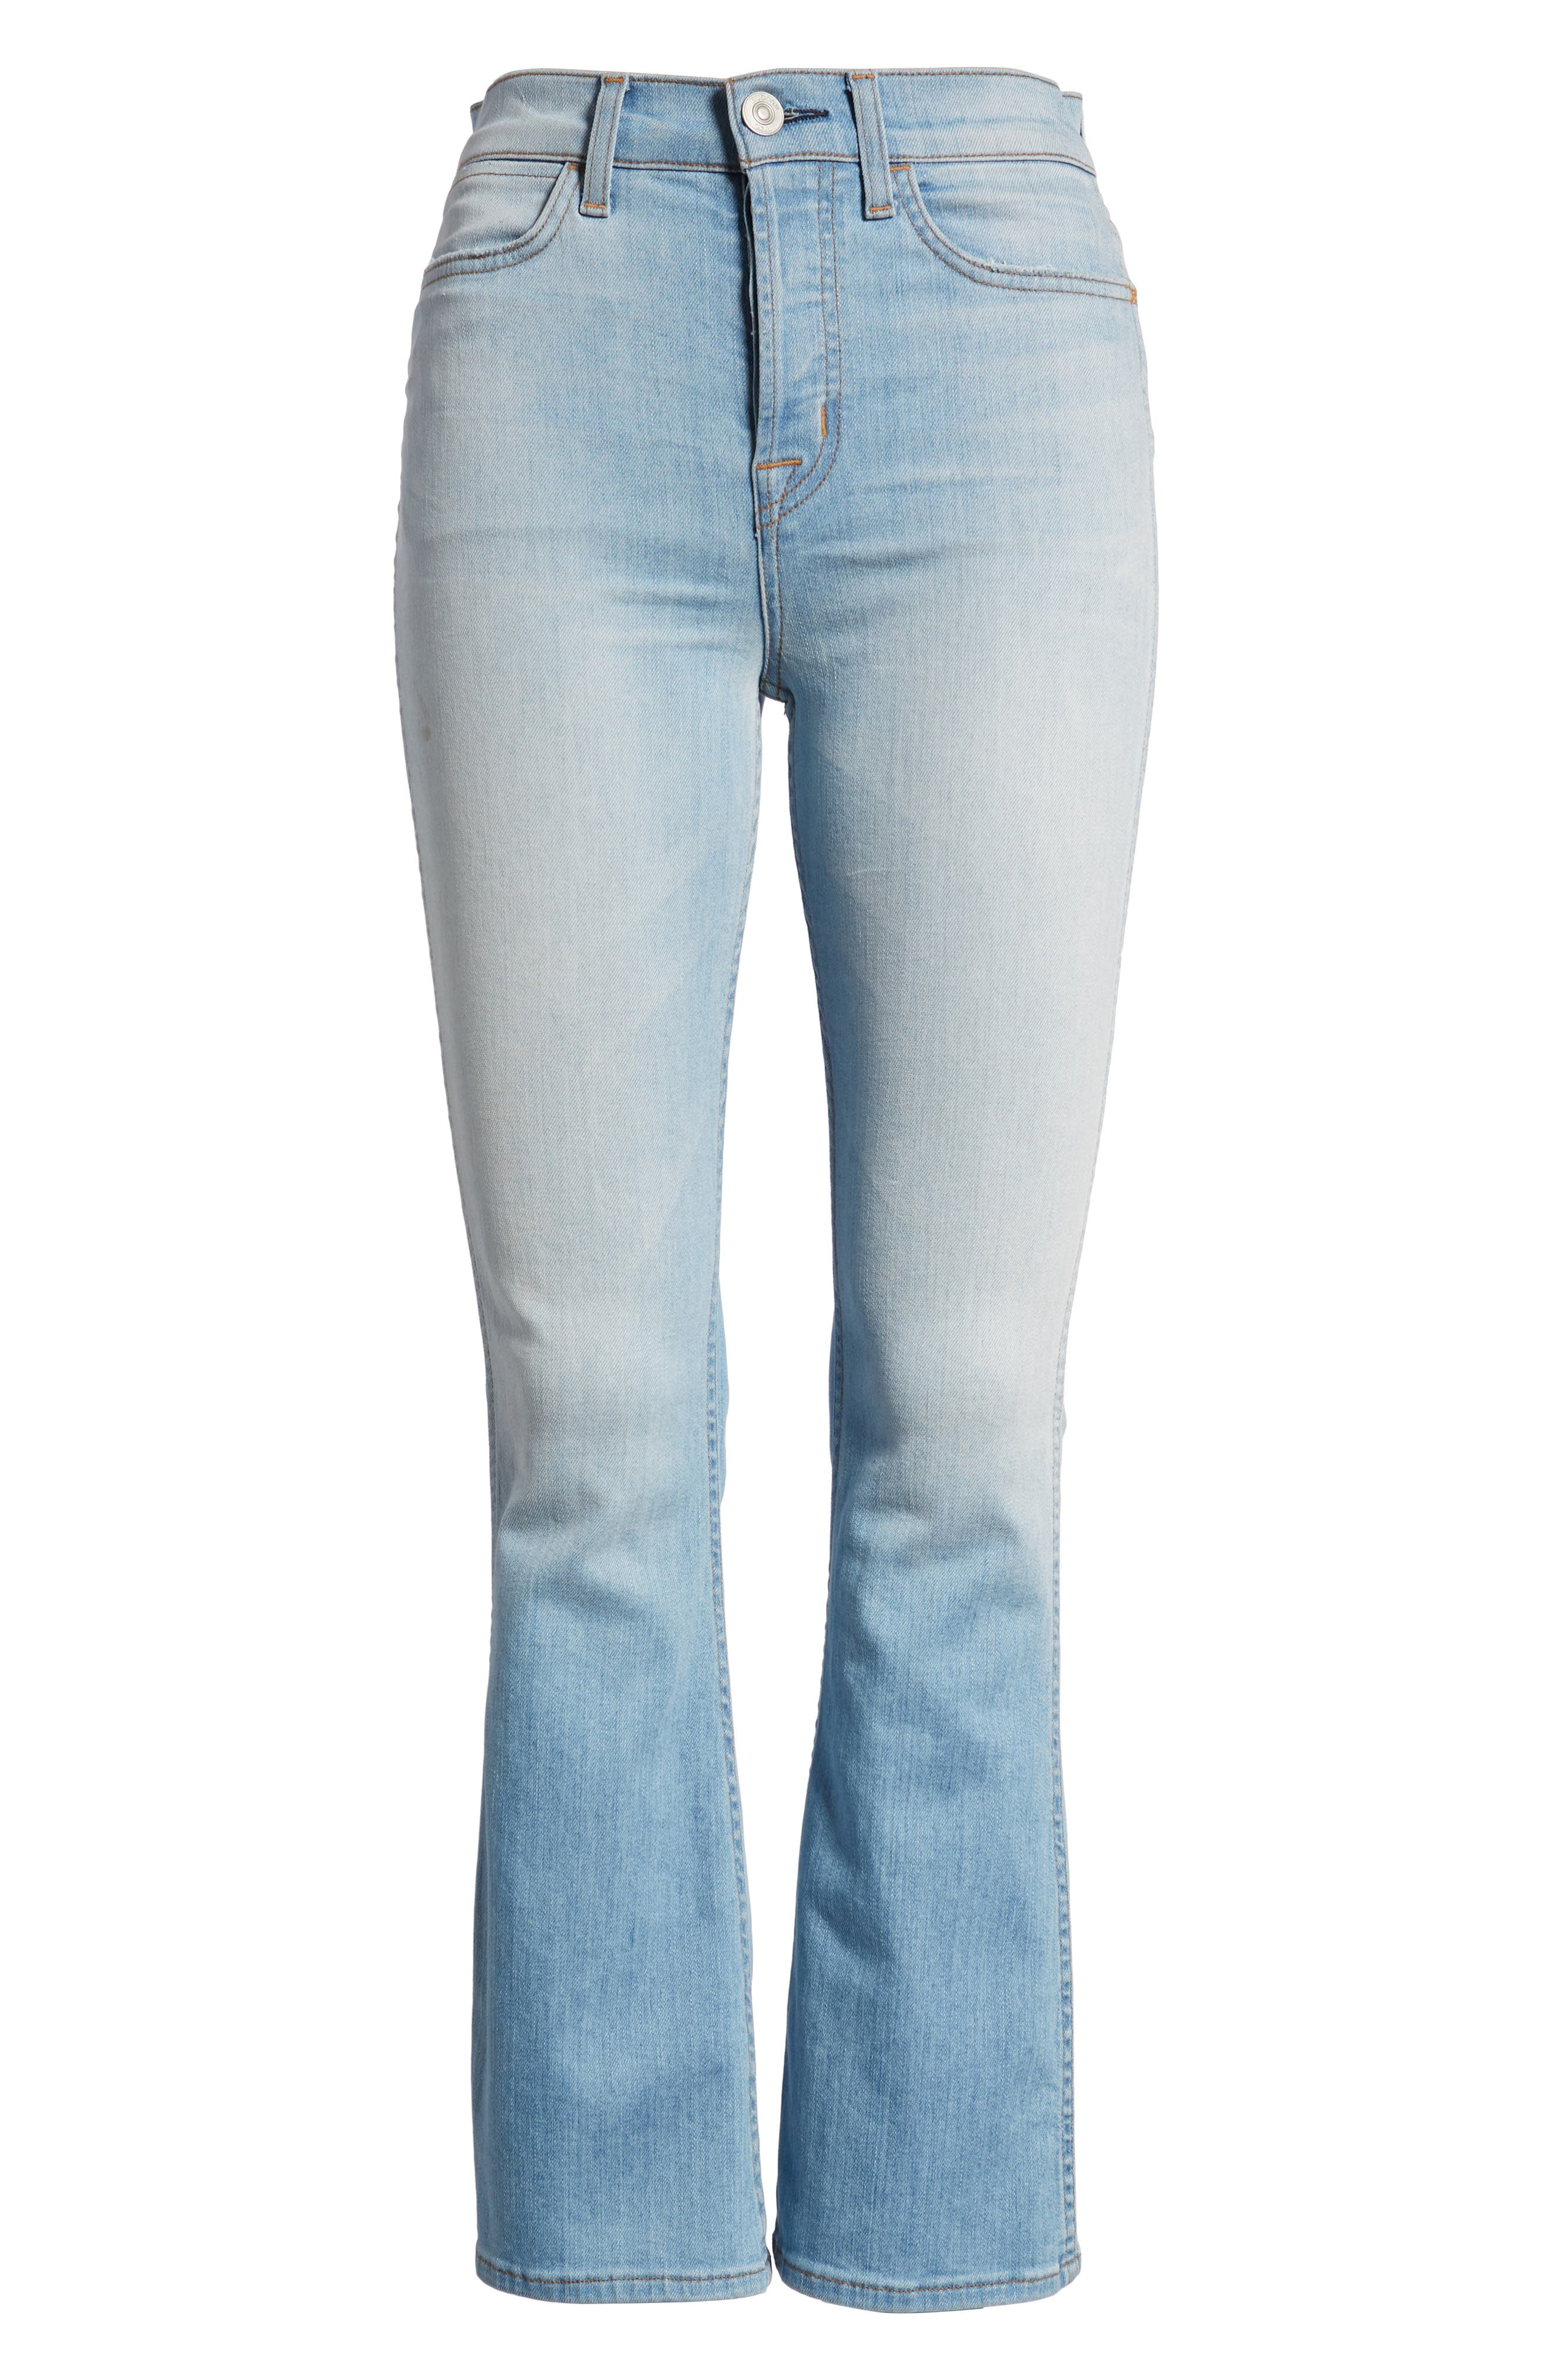 Holly High Waist Crop Flare Jeans,                             Alternate thumbnail 7, color,                             457